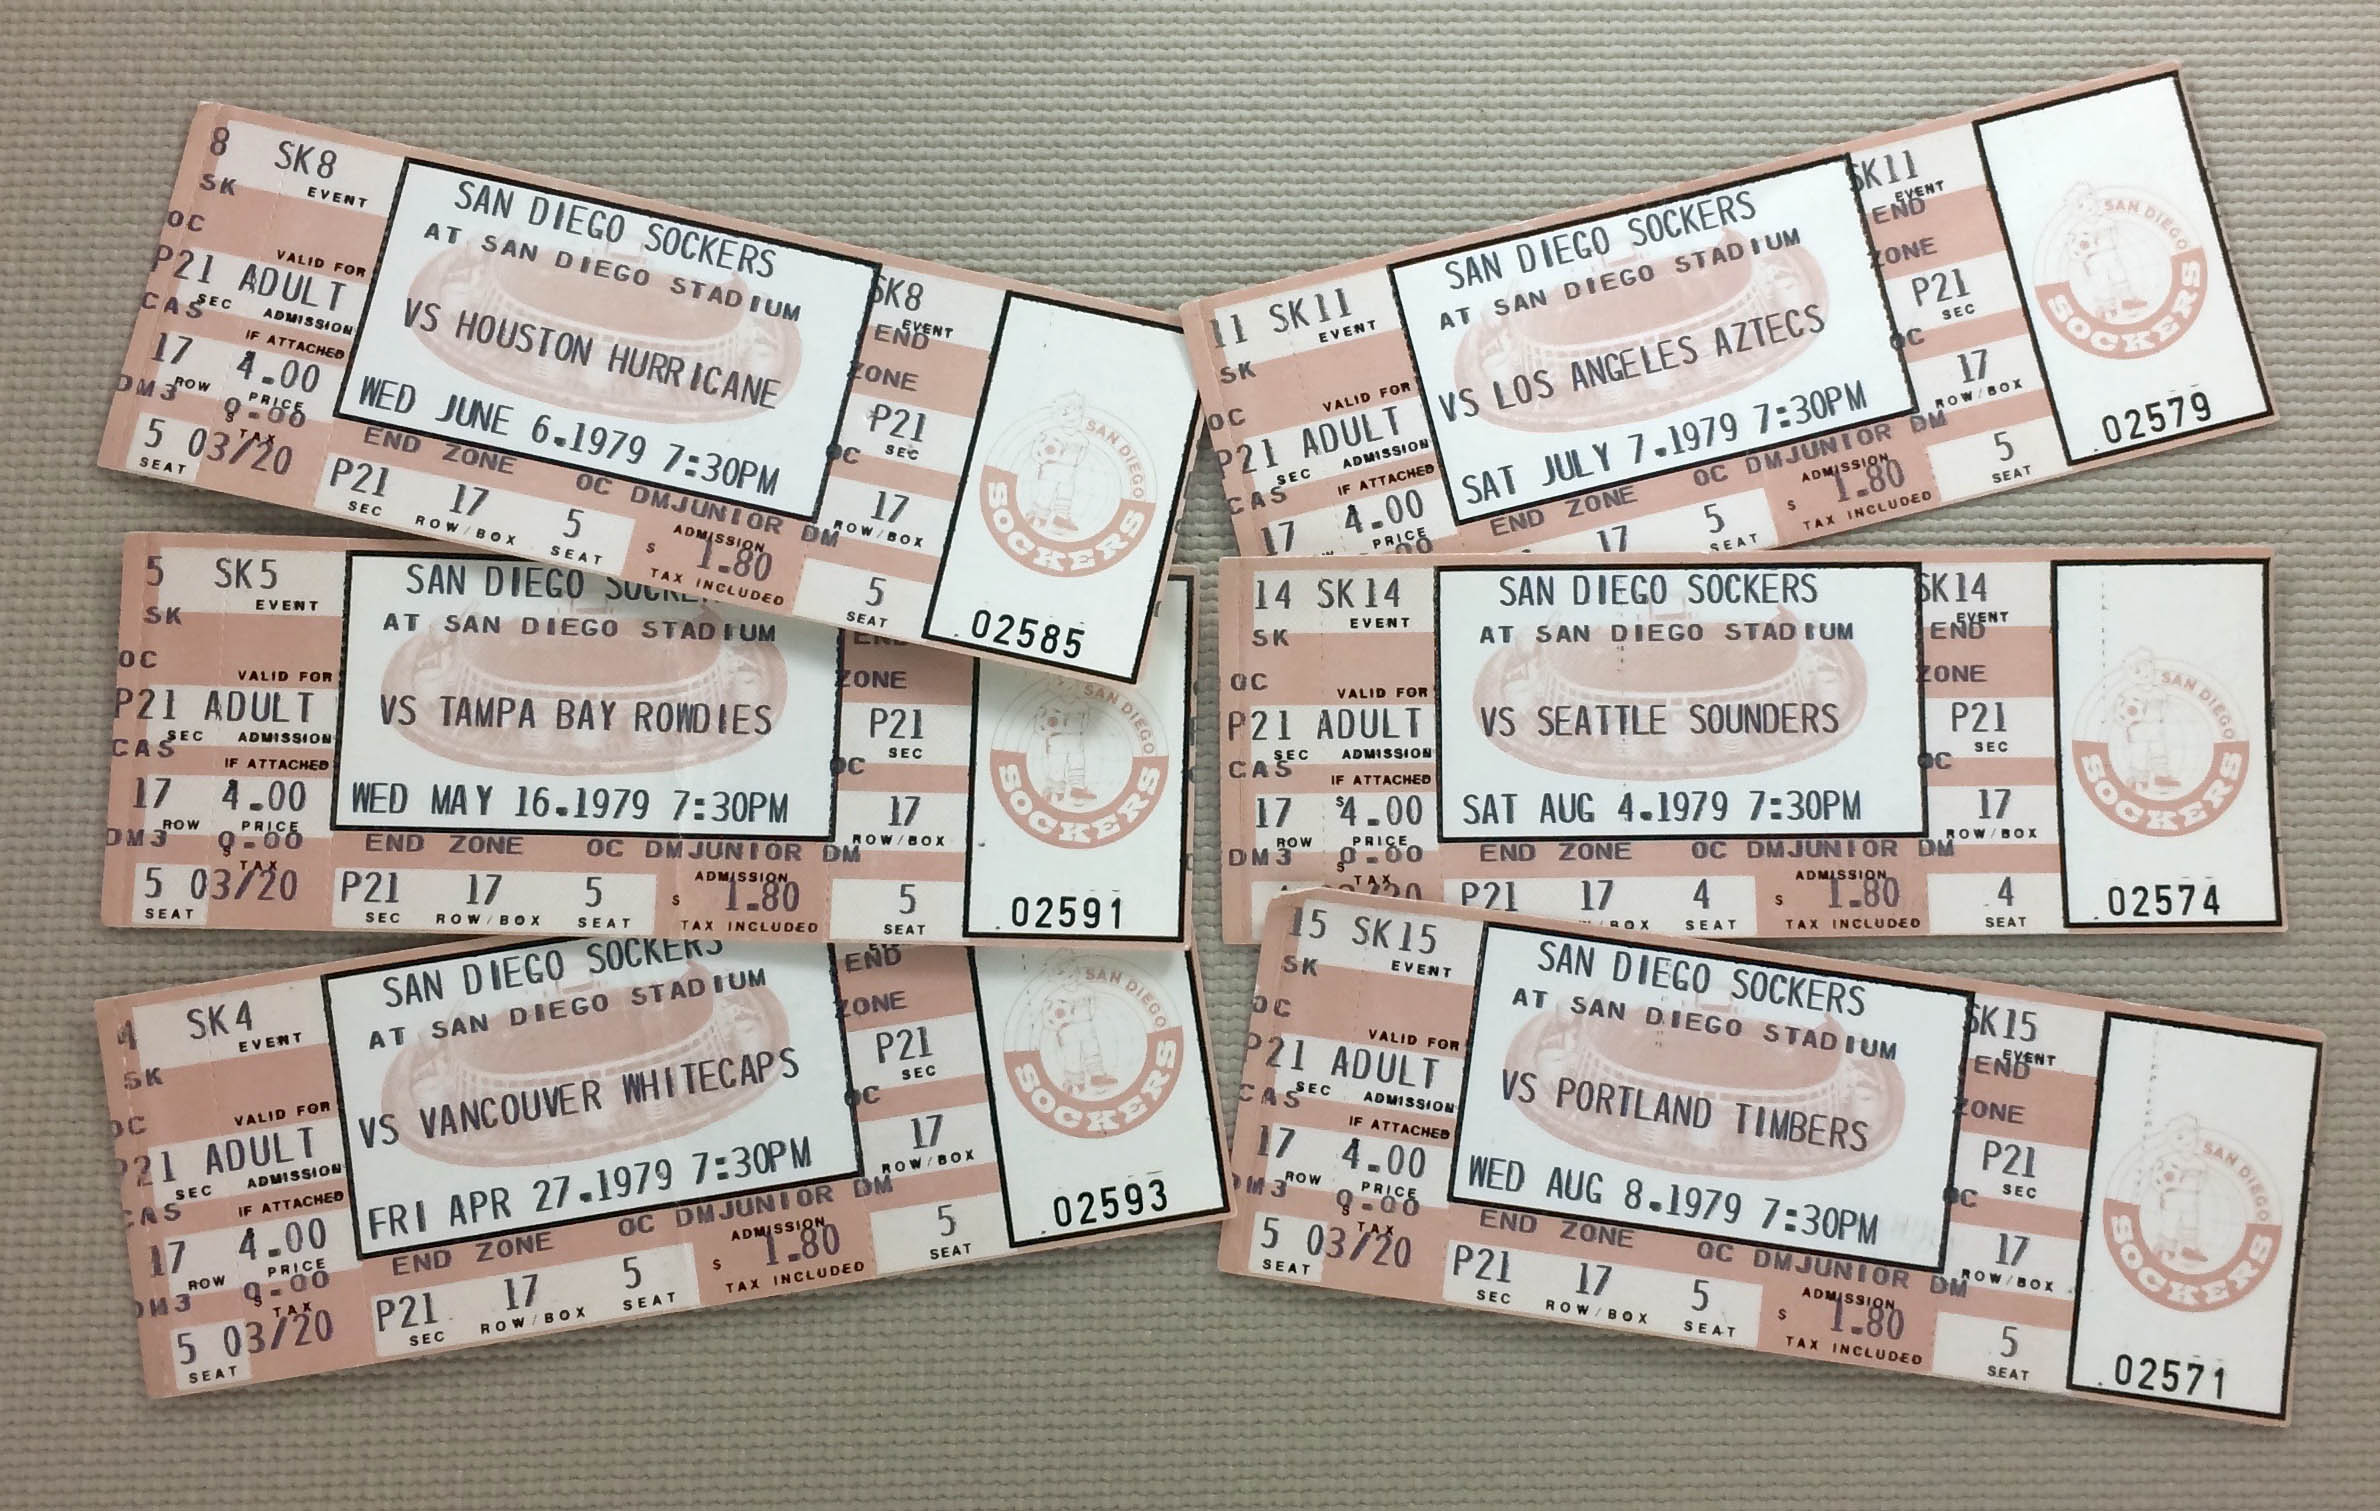 San Diego Sockers 1979 Tickets